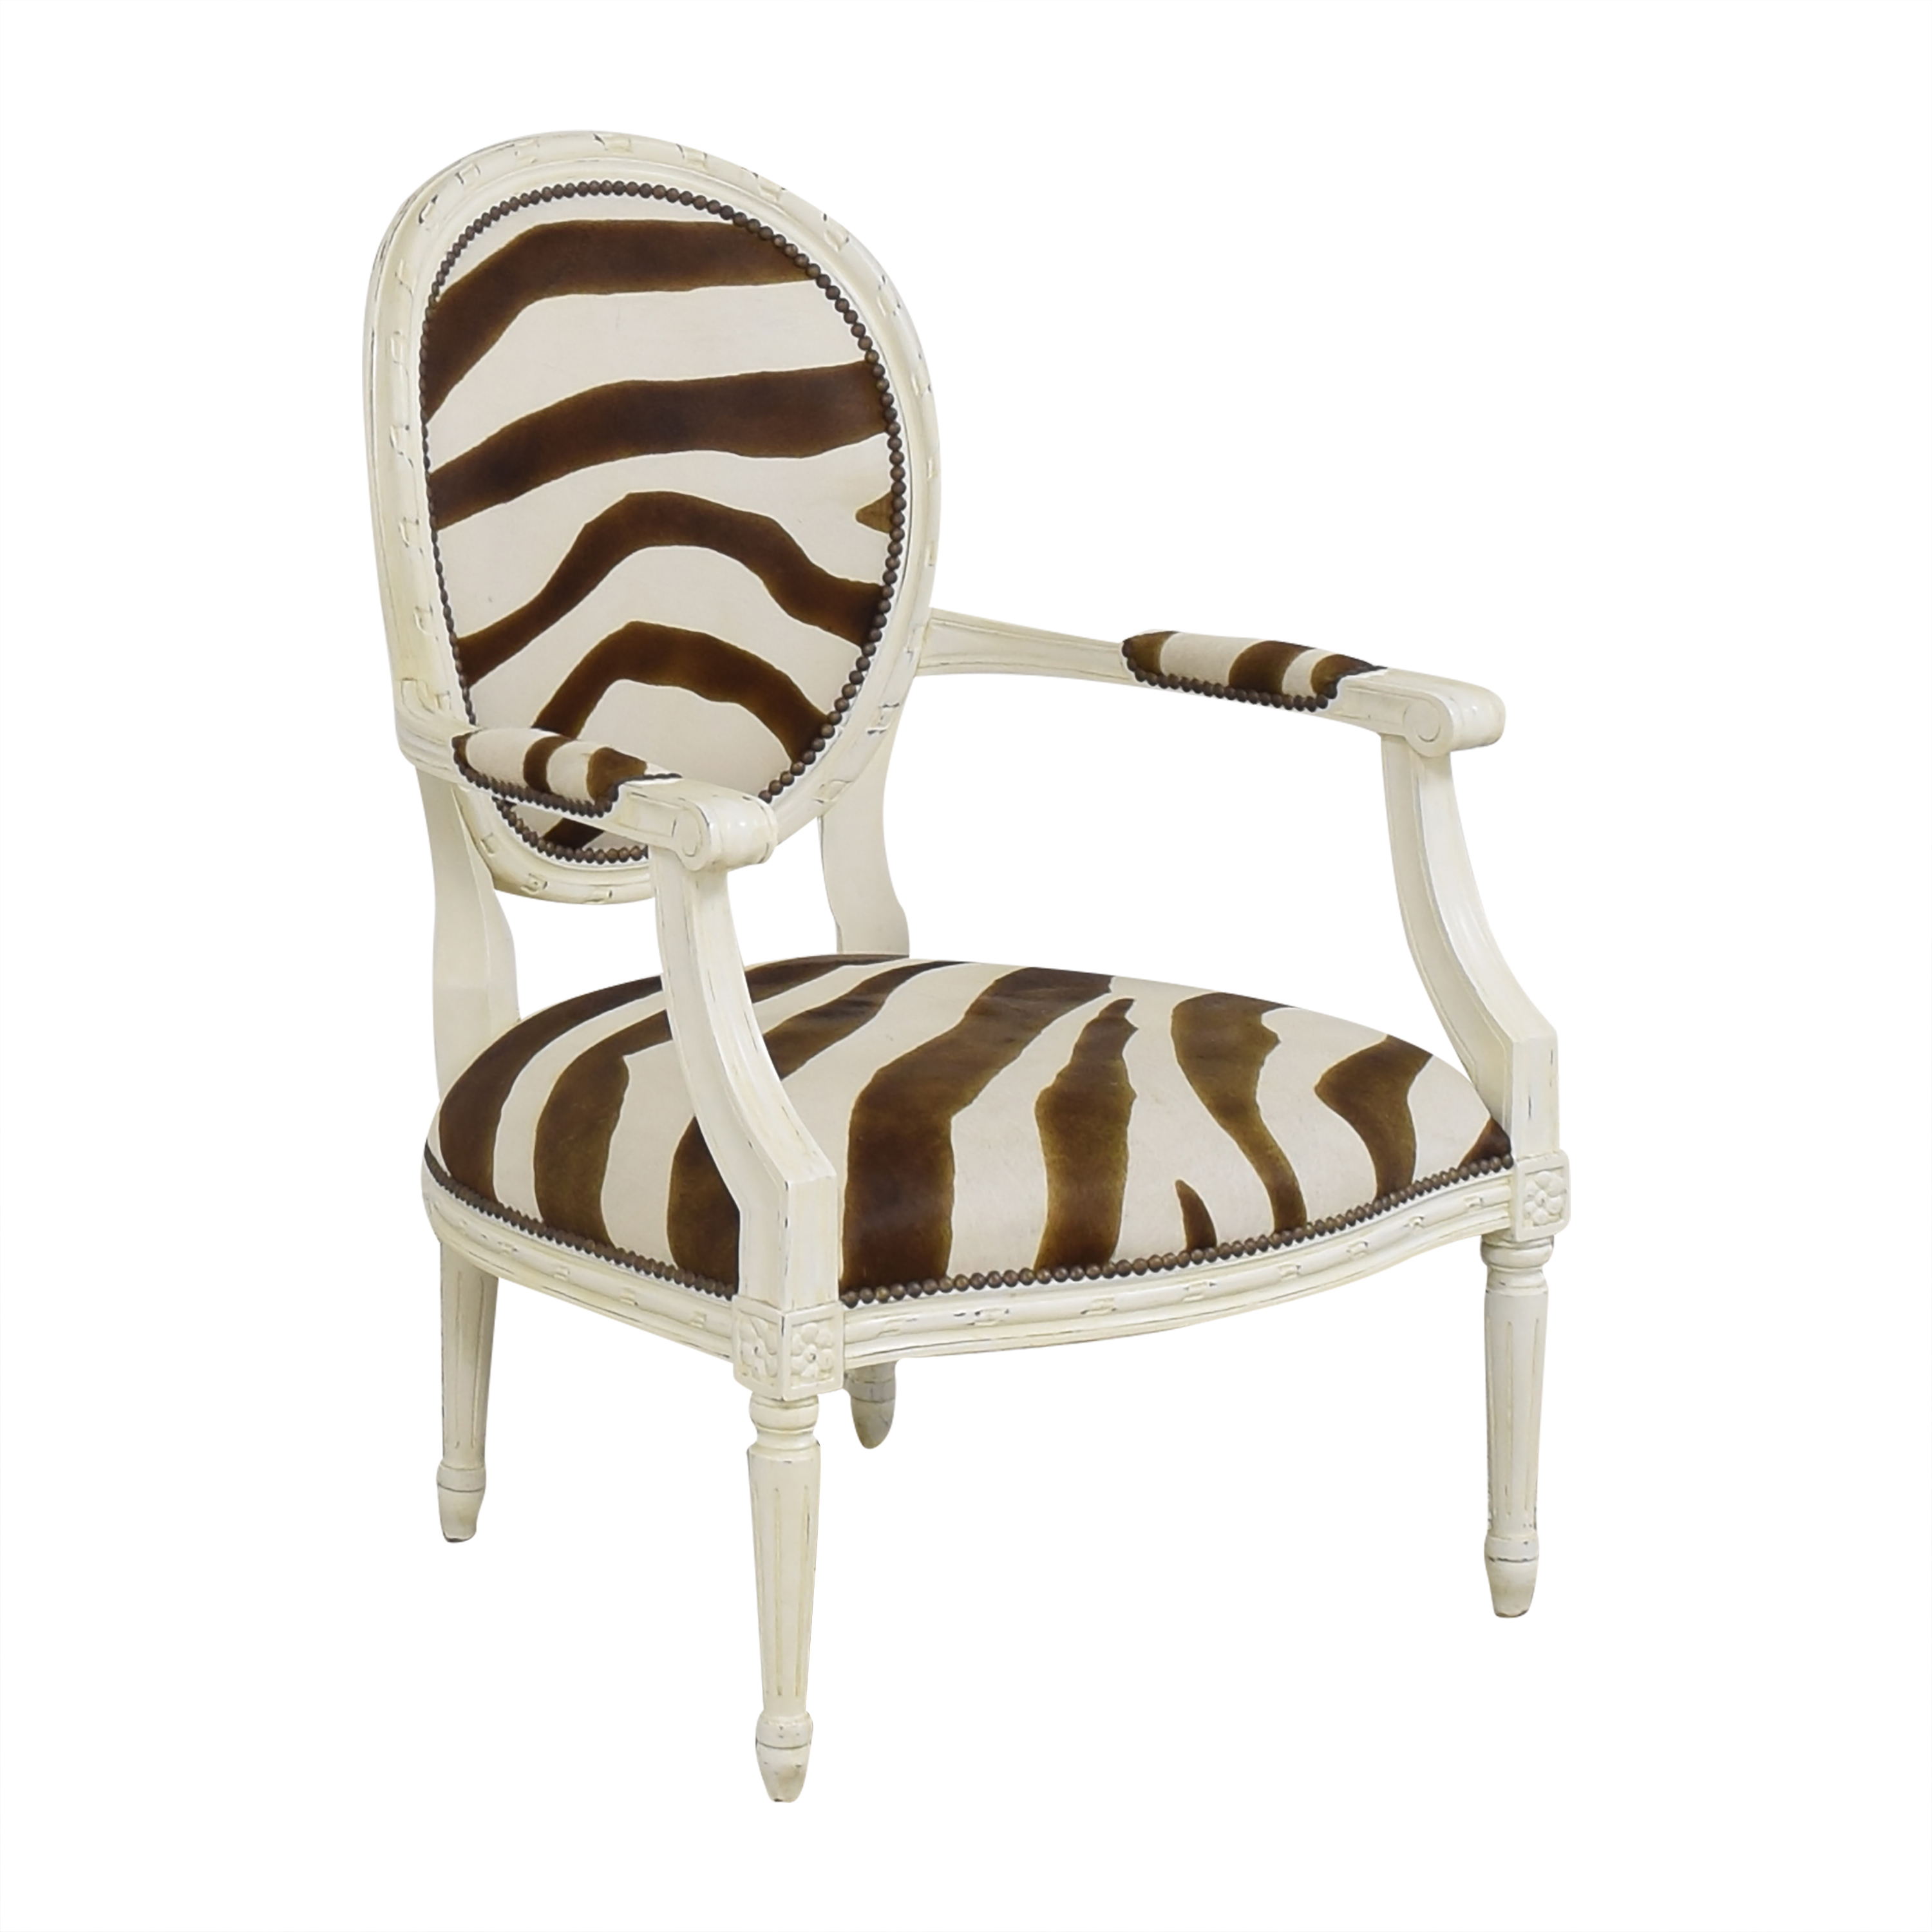 buy Oly Studio Sophie Lounge Chair Oly Studio Chairs